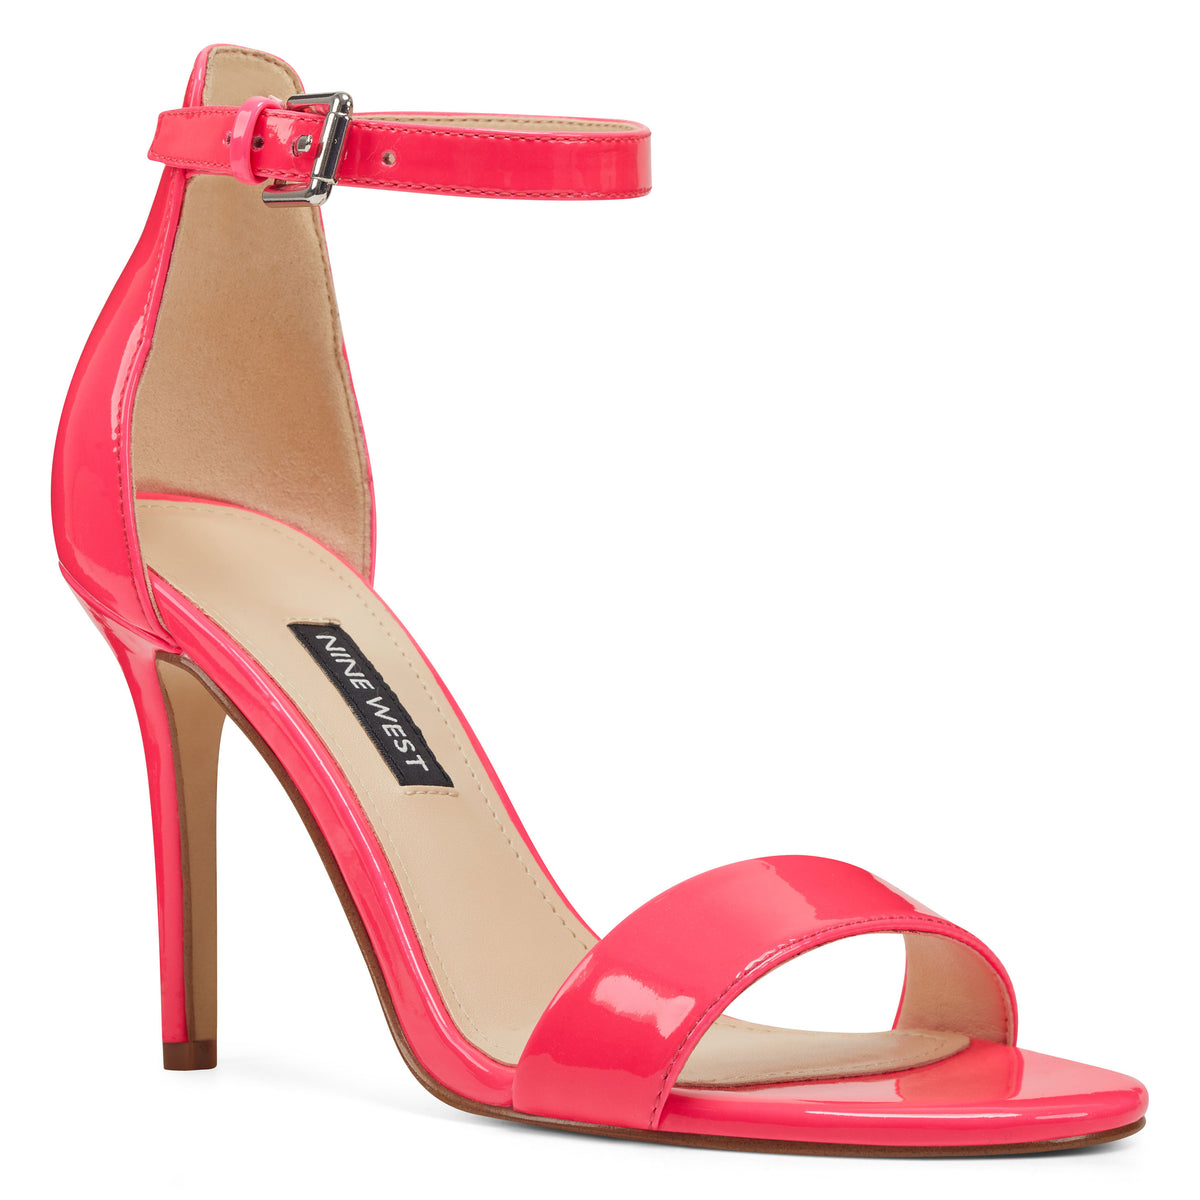 mana-ankle-strap-sandals-in-neon-pink-patent